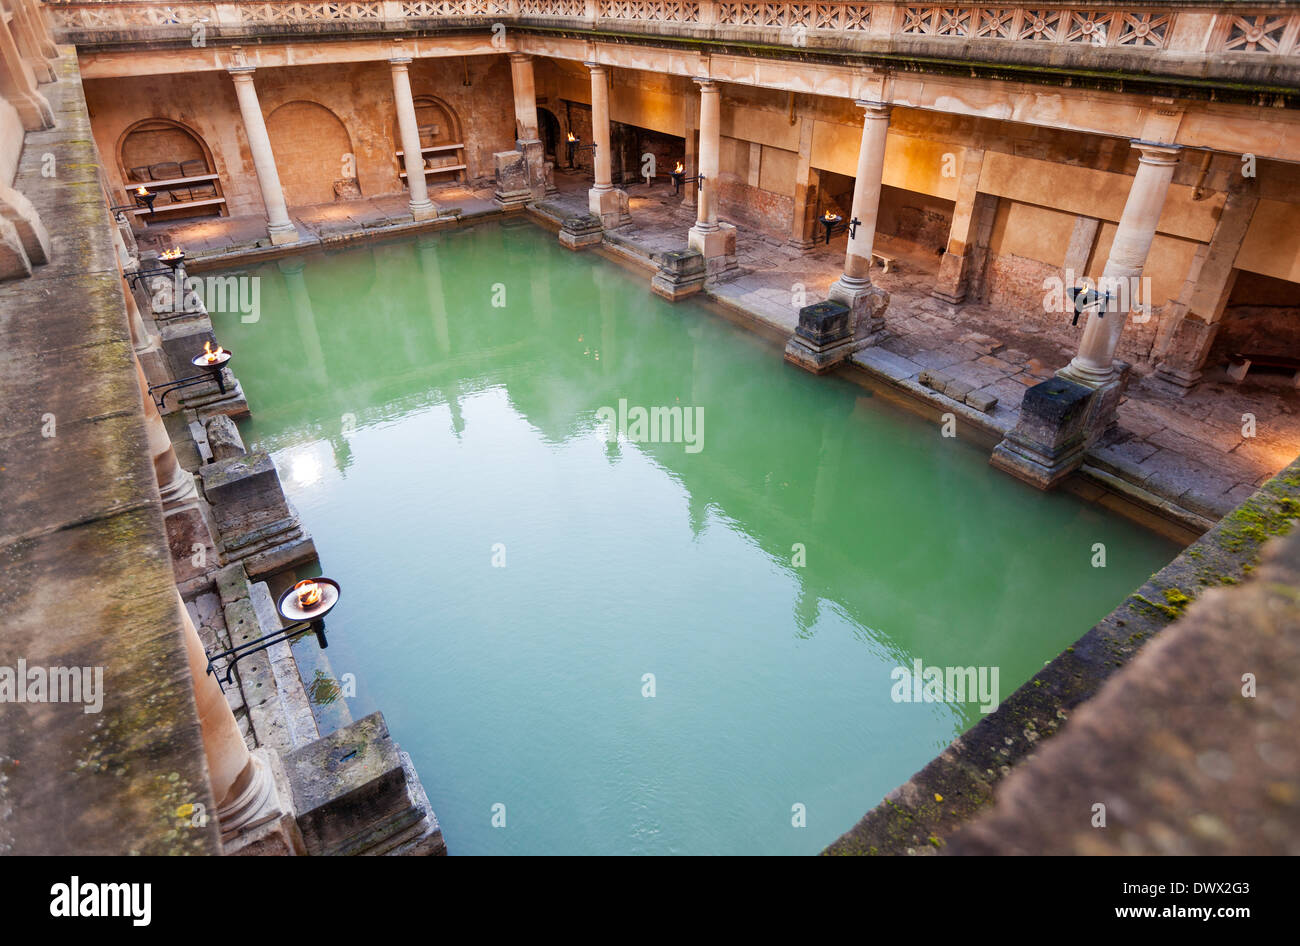 The Great Bath, part of the Roman Baths in Bath, UK - Stock Image